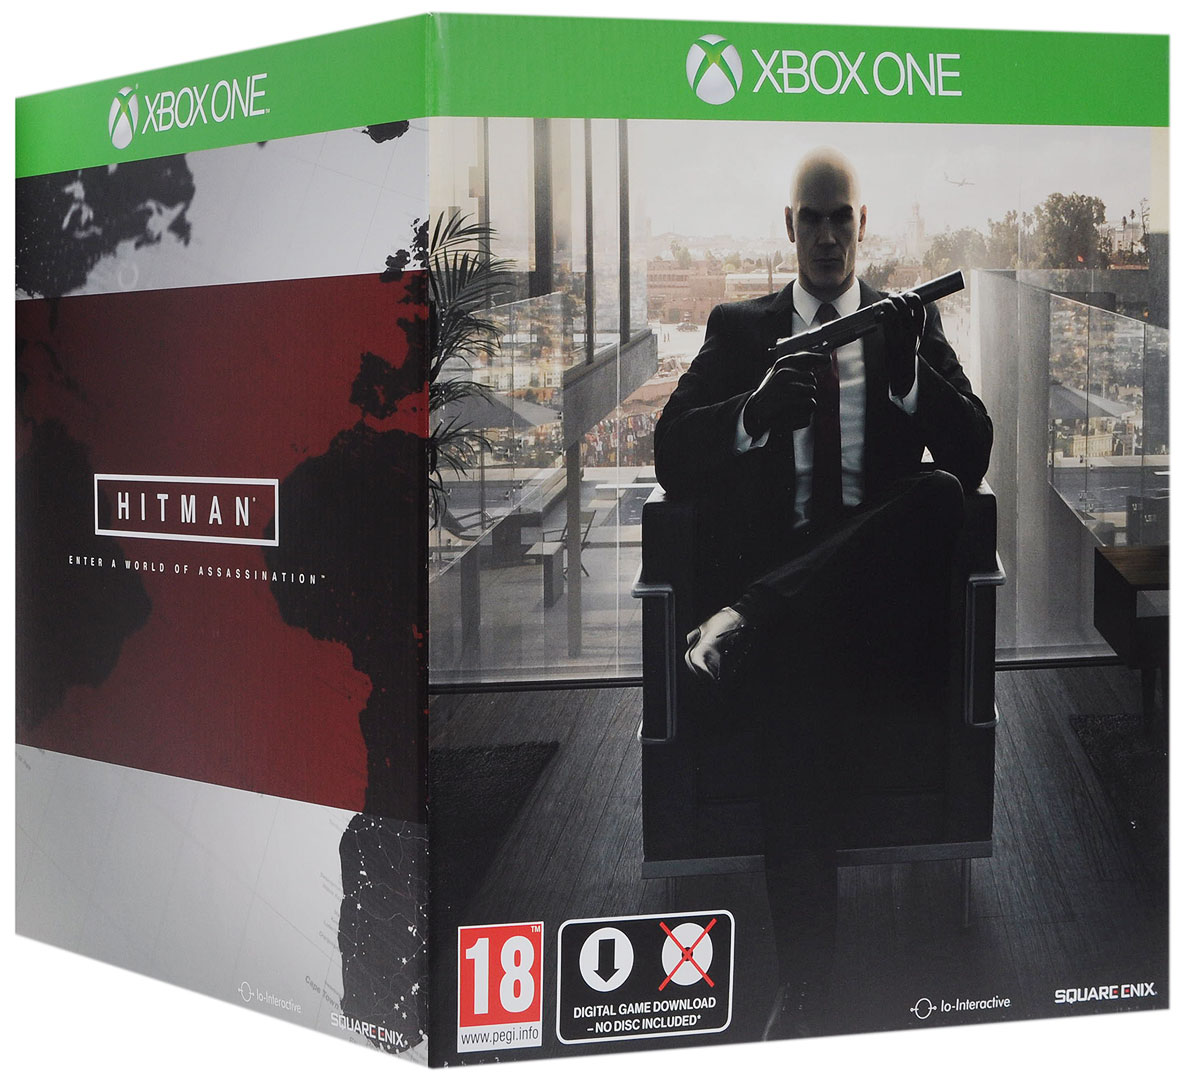 Hitman. Digital Collector's Edition (Xbox One) видеоигра для xbox one overwatch origins edition